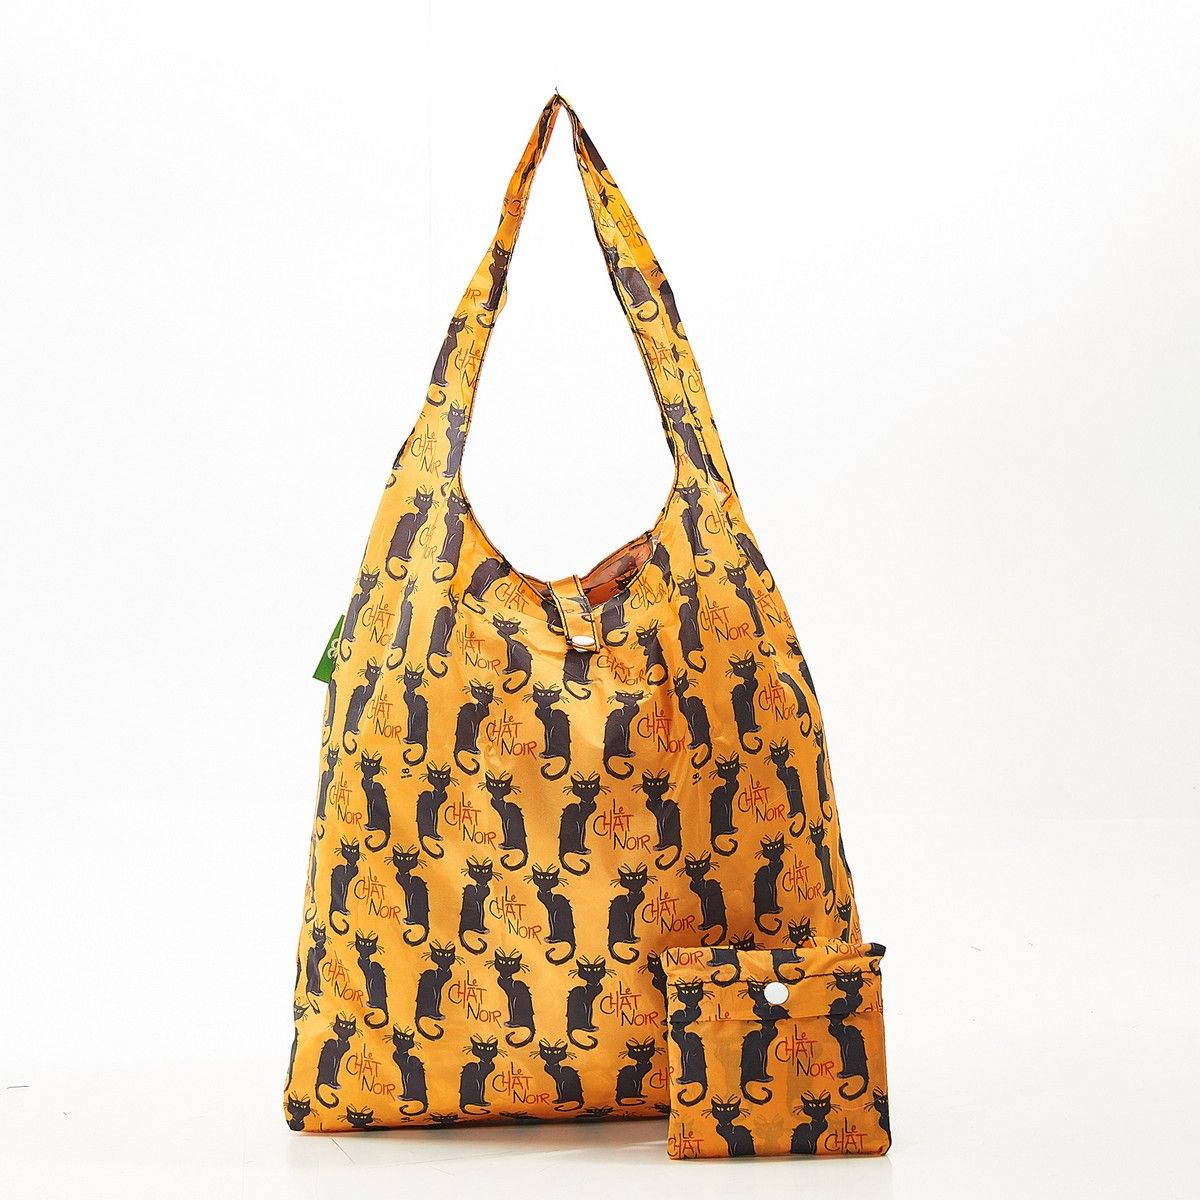 Chat Noir packable Shopper Mustard yellow